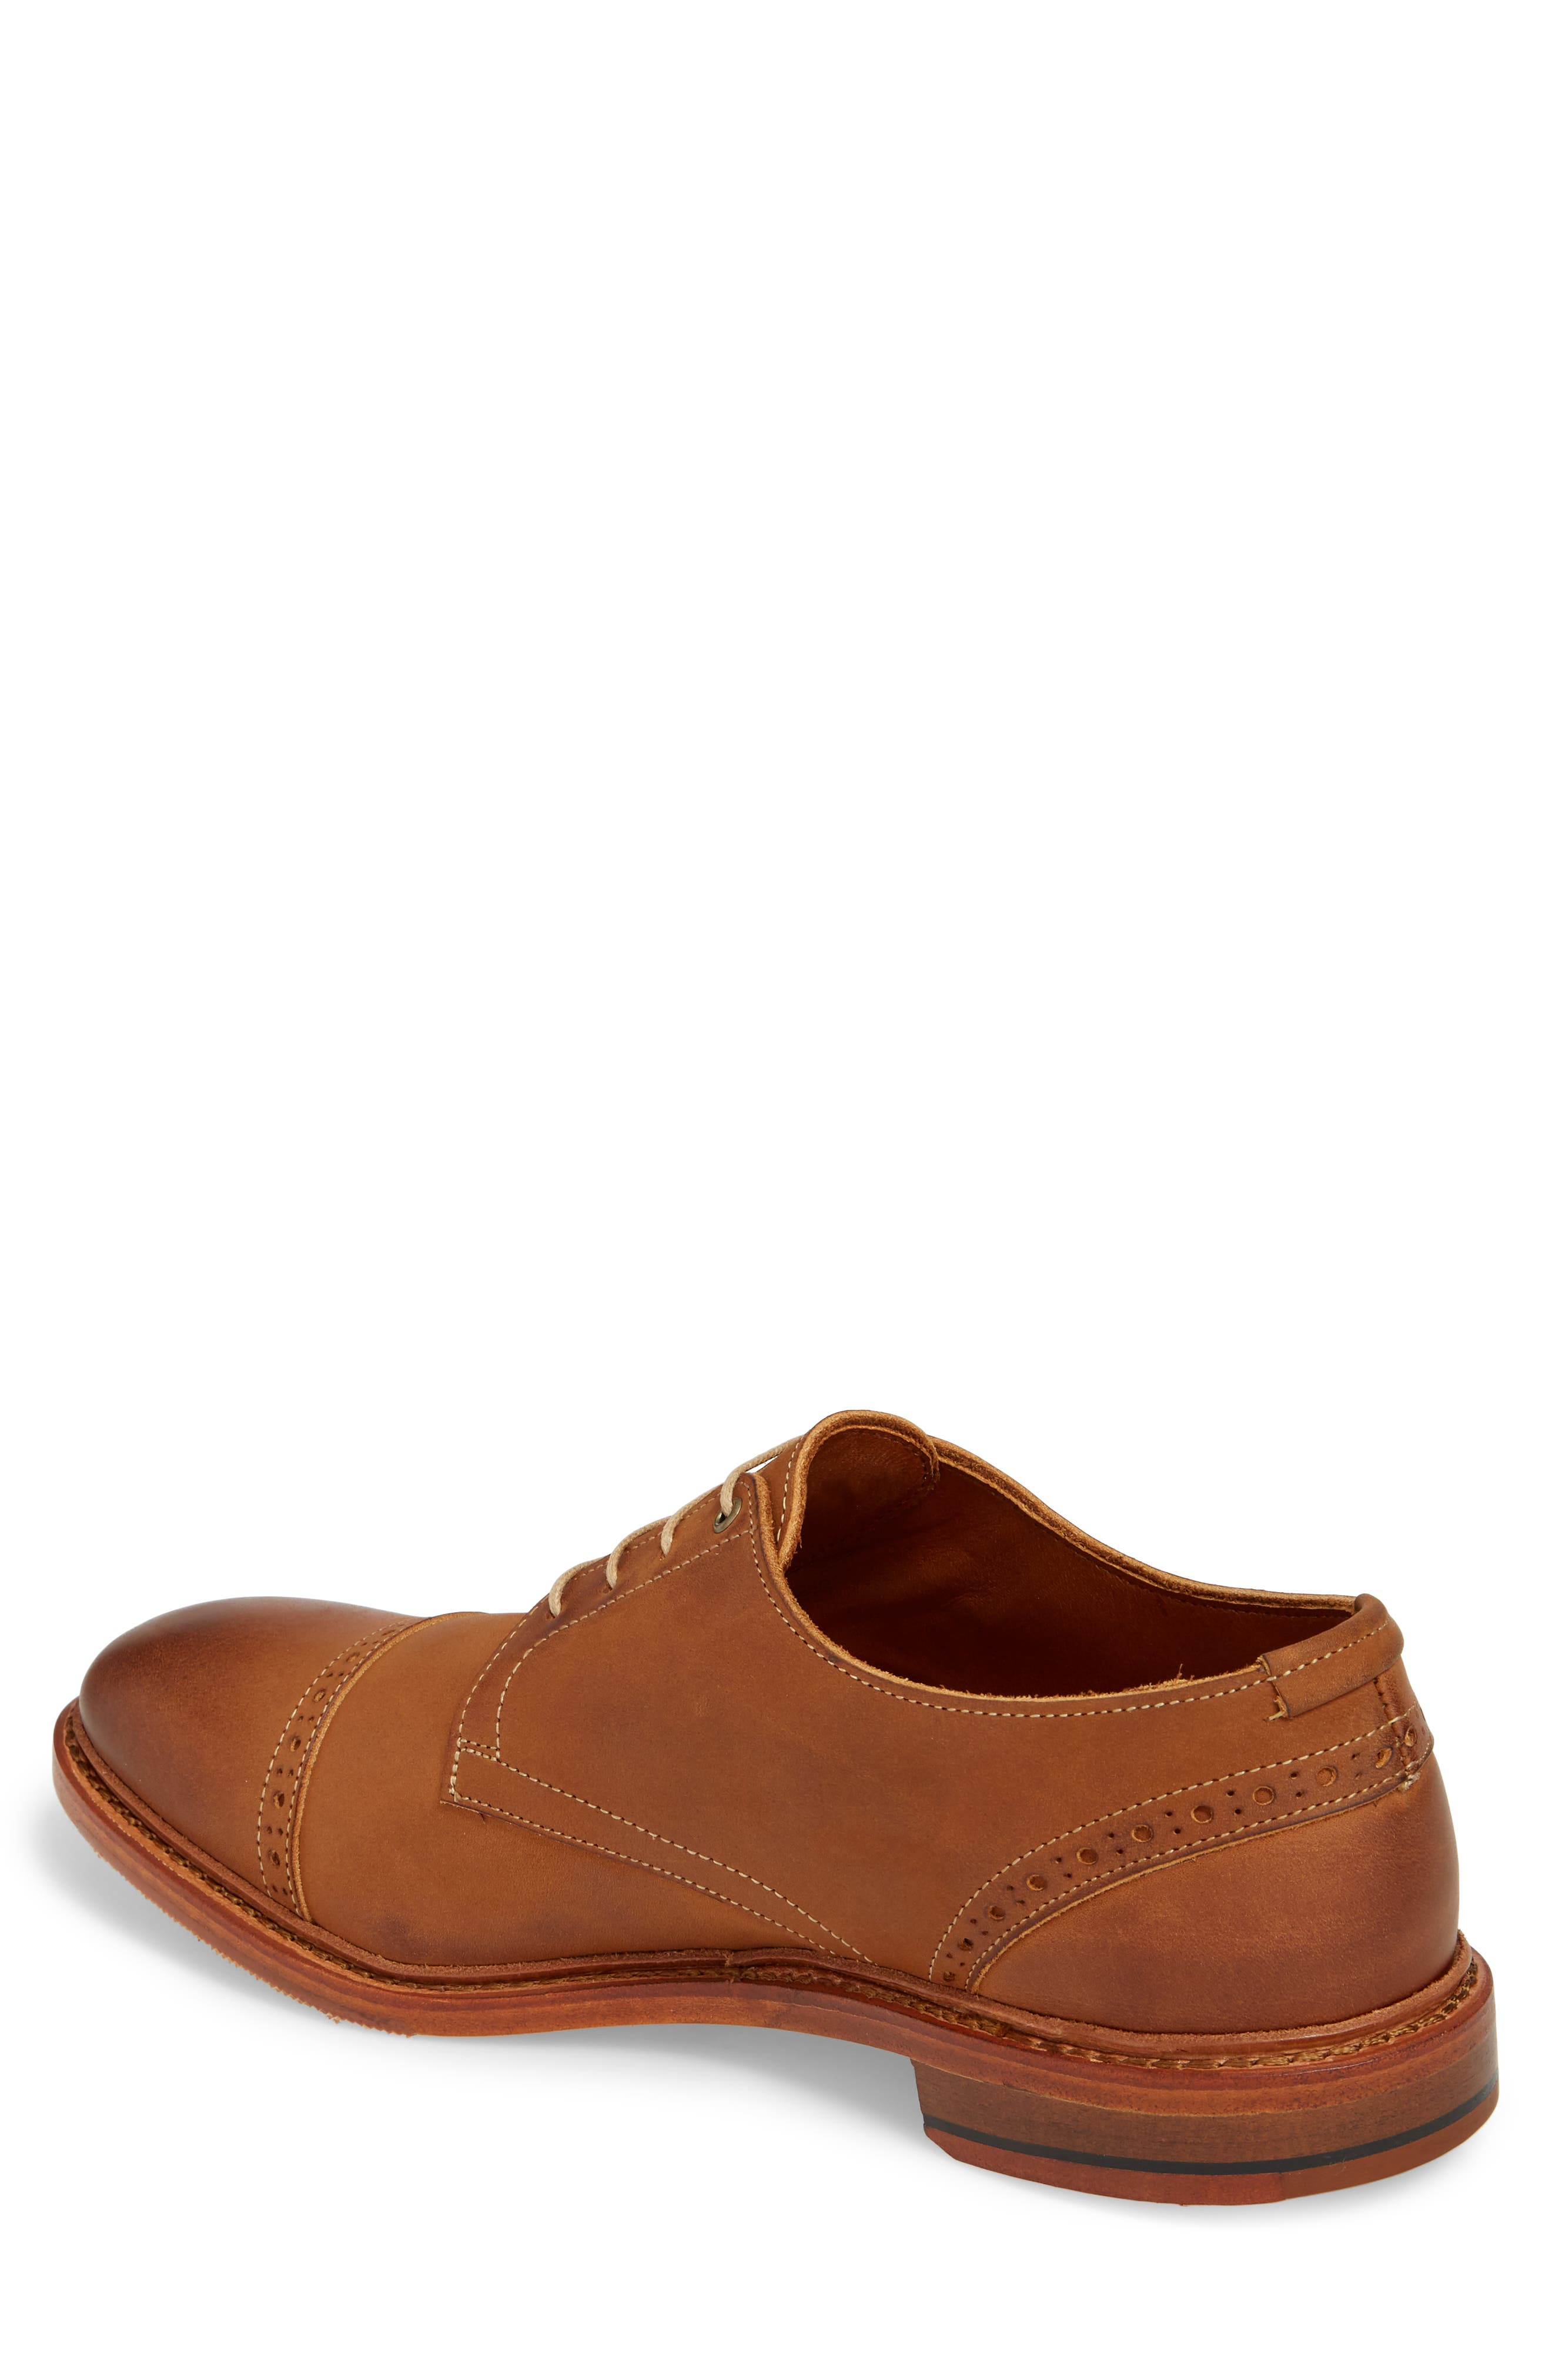 Kitsap Cap Toe Derby,                             Alternate thumbnail 2, color,                             TAN LEATHER